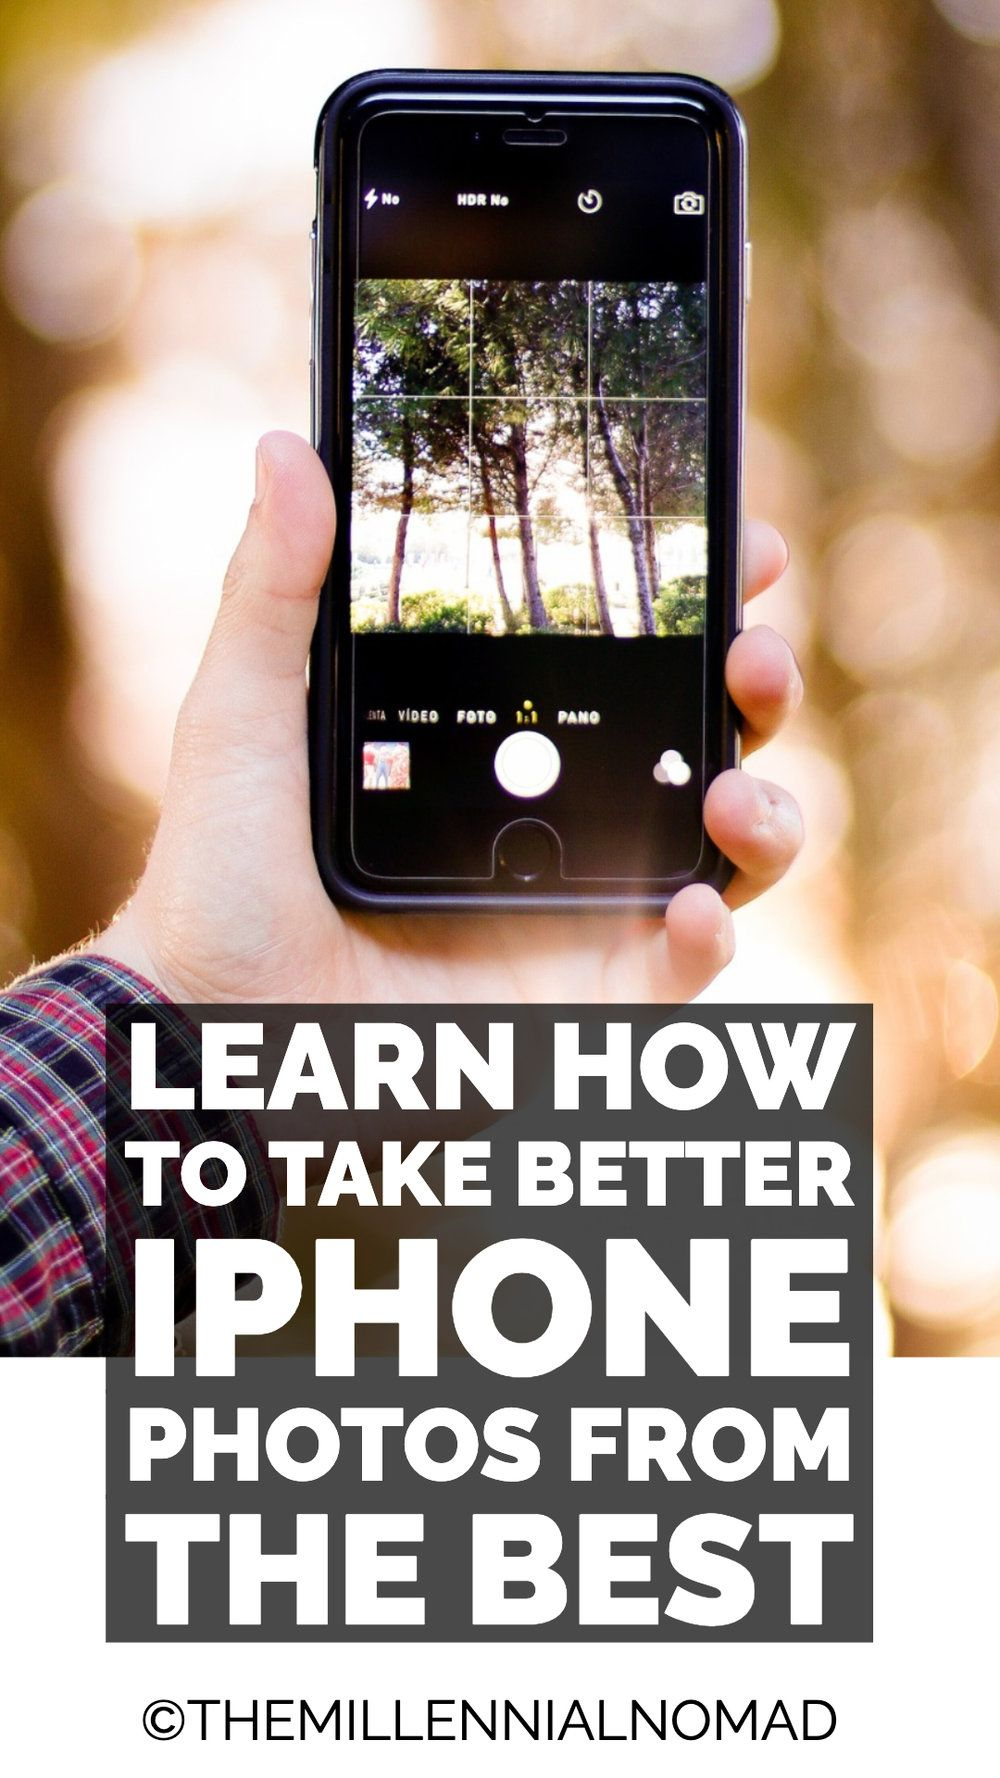 Lightmob: An App That Helps You Become A Better iPhone ...